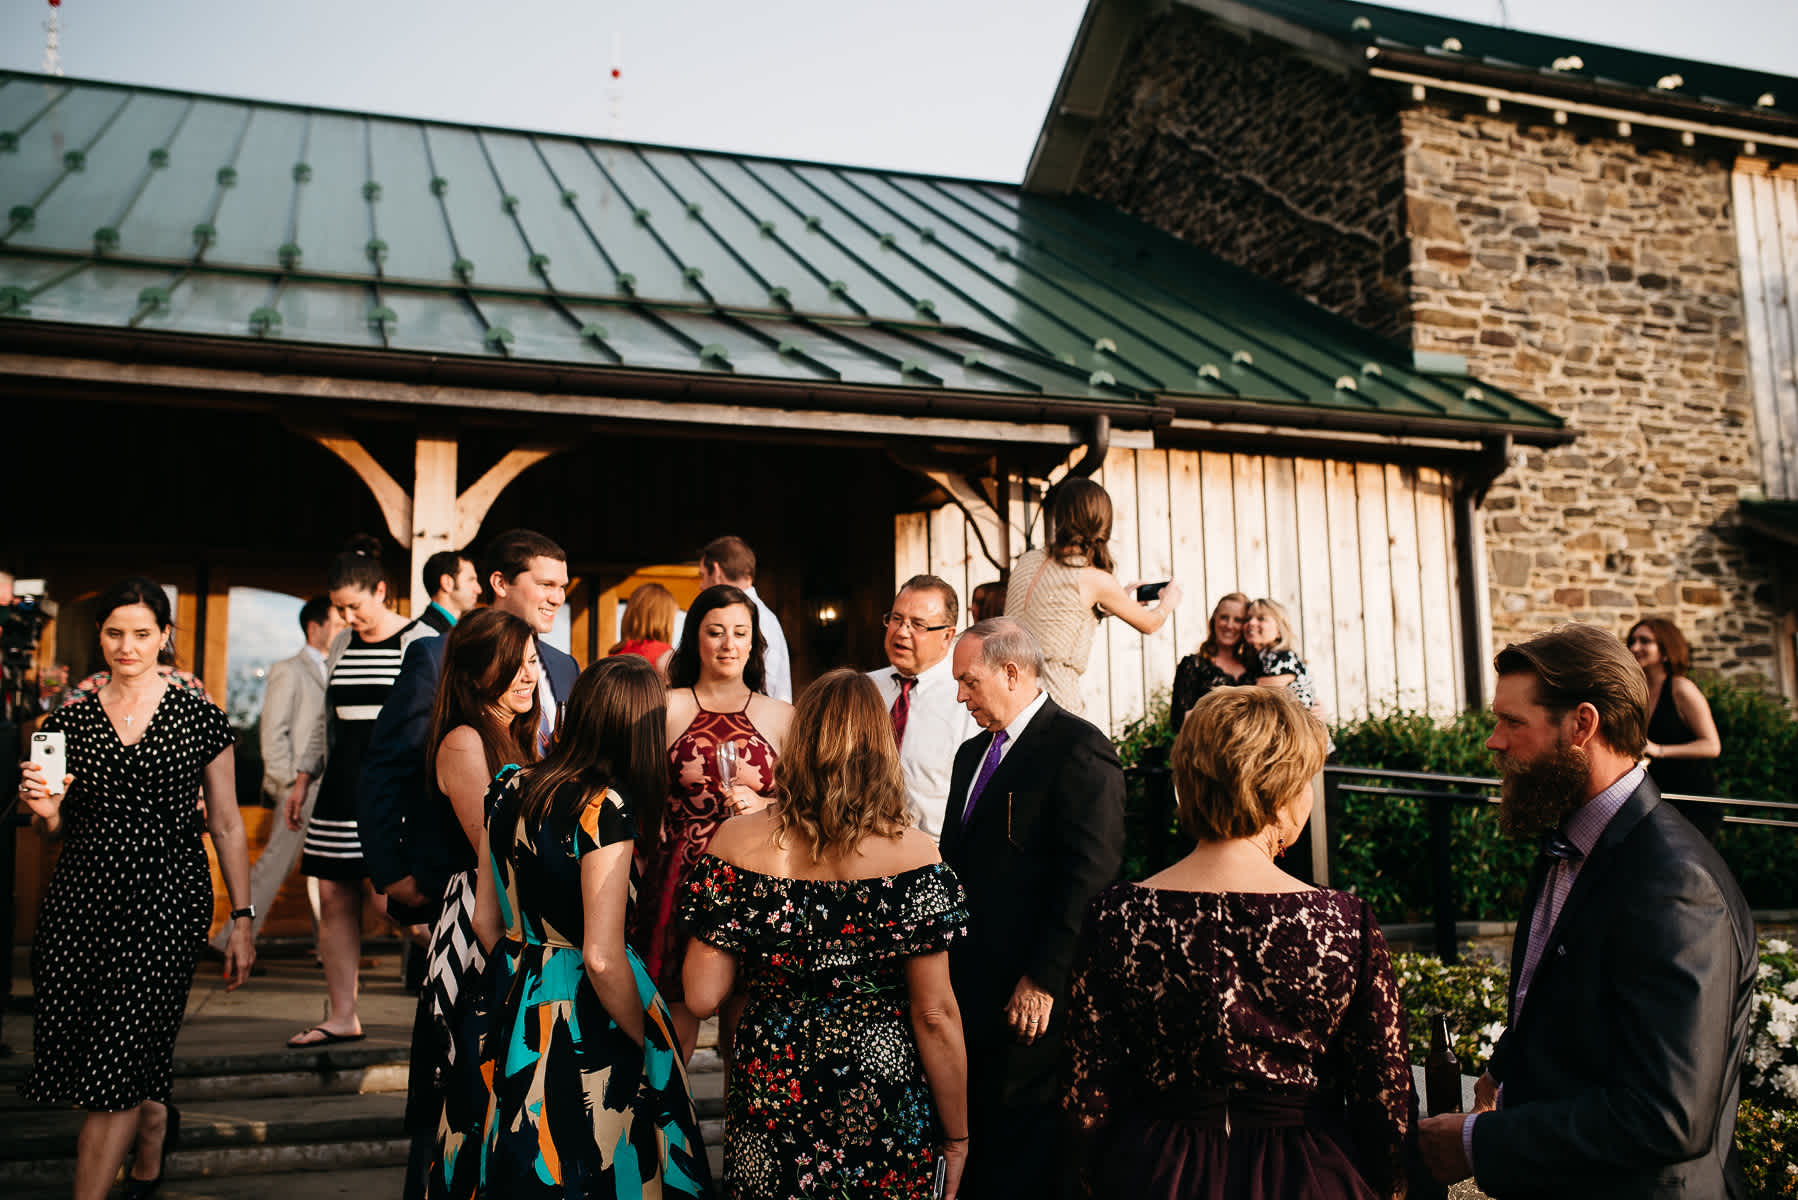 Pennsylvania-Newton-Rosebank-winery-spring-lifestyle-wedding-143